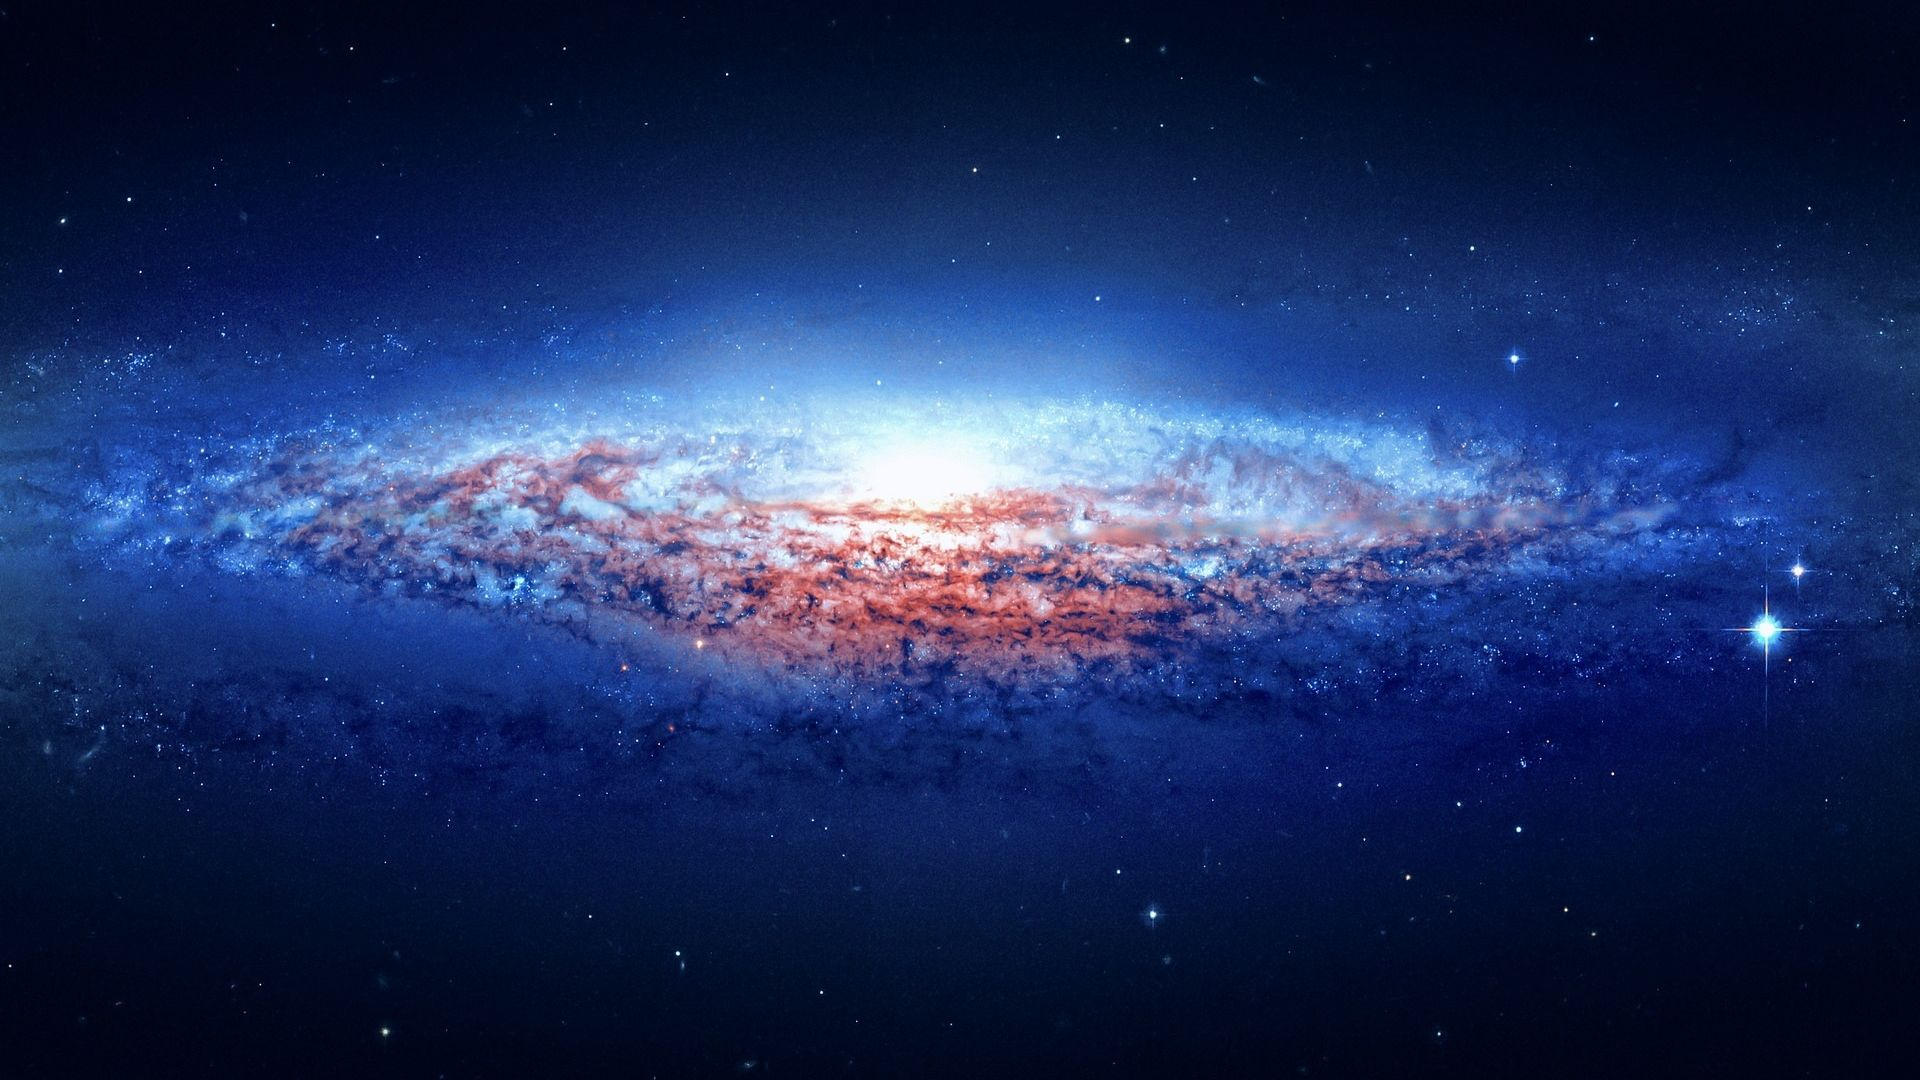 Galaxy - wallpaper HD.jpg